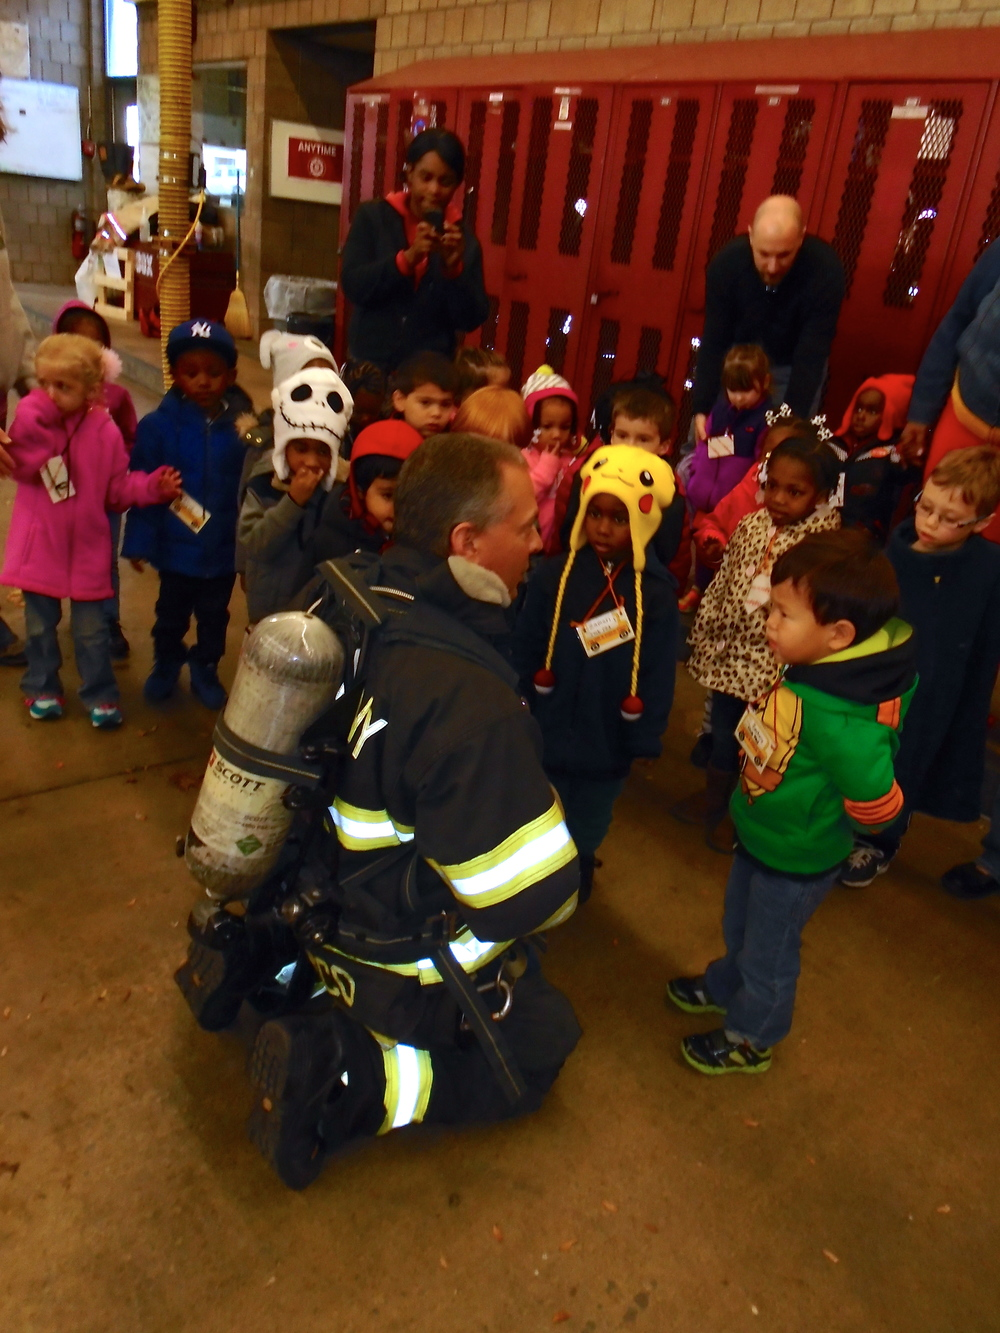 Examining the firefighter without his mask...